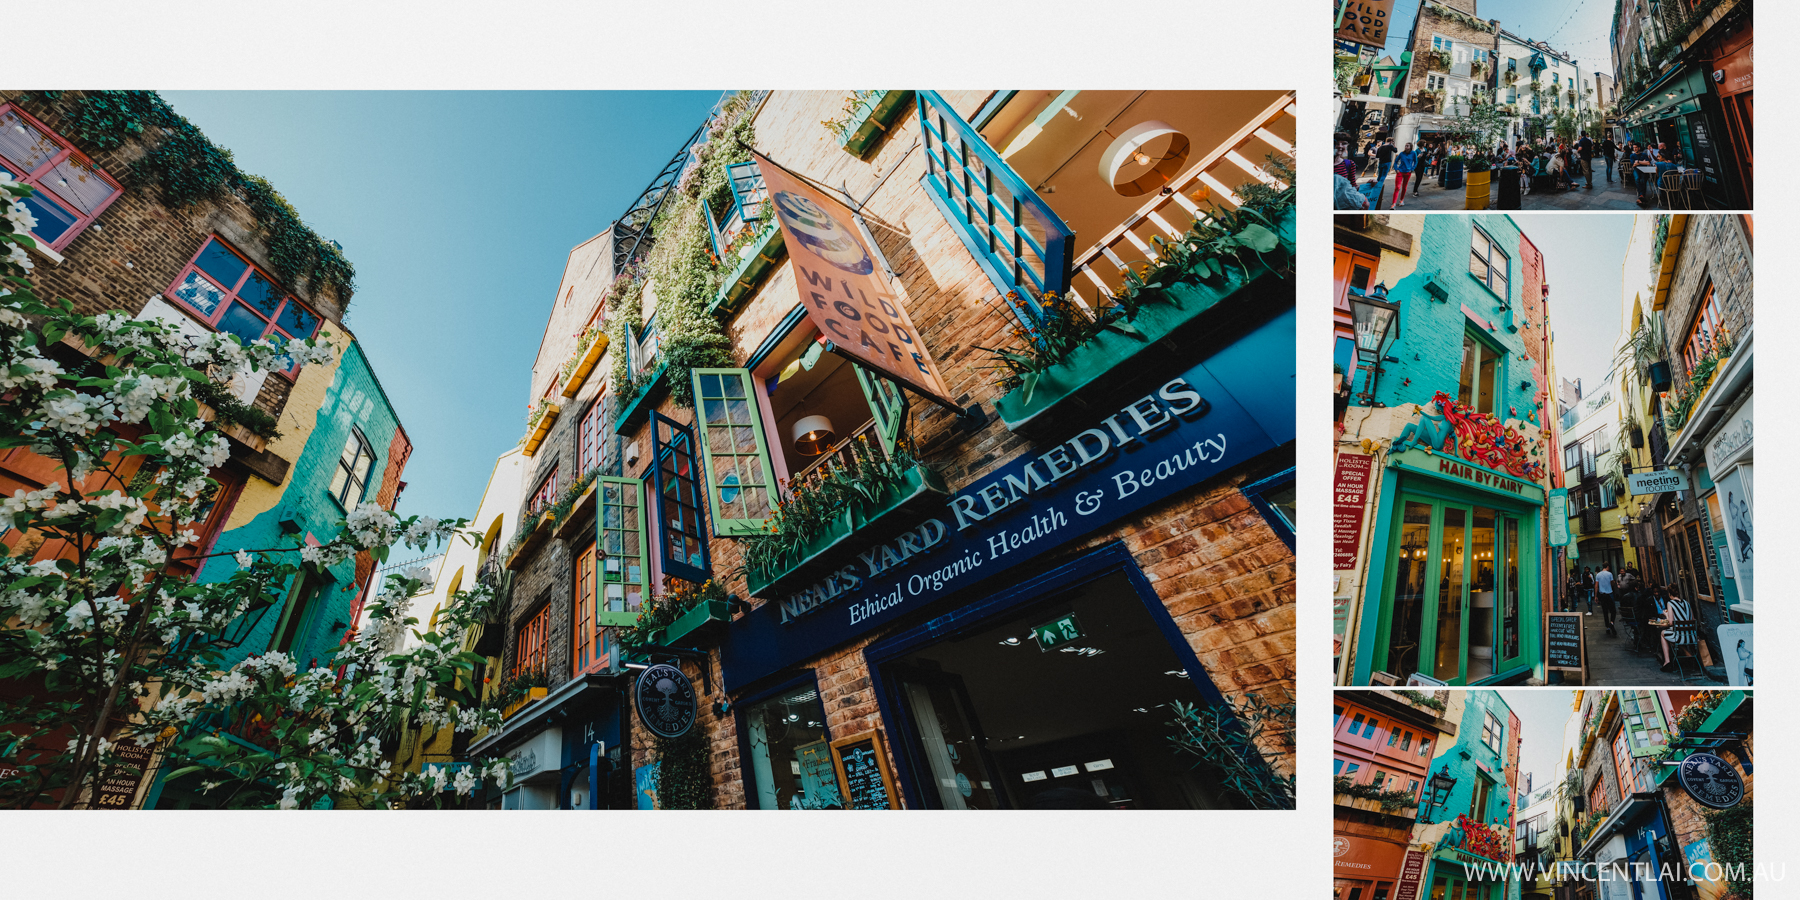 Neal's Yard is a small alley in London's Covent Garden